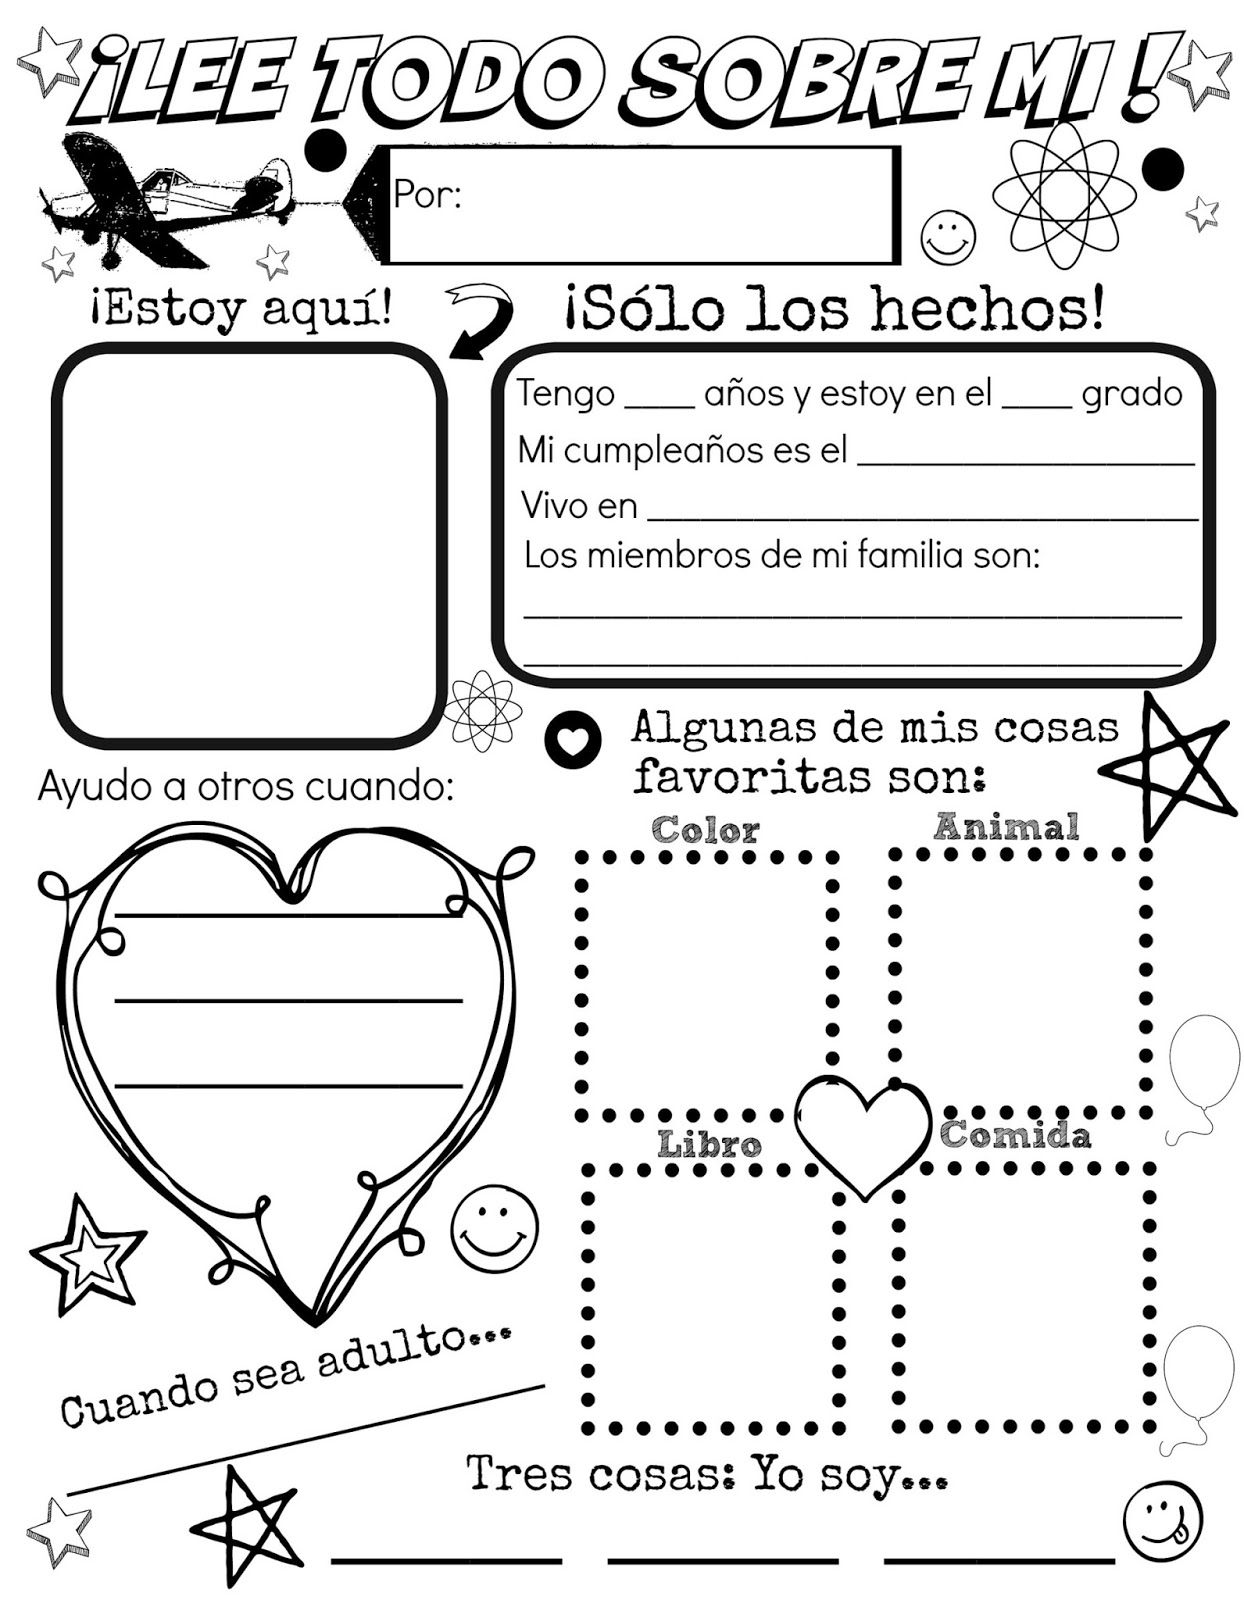 worksheet Free Printable Spanish Worksheets discovering the world through my sons eyes all about me free spanish printable